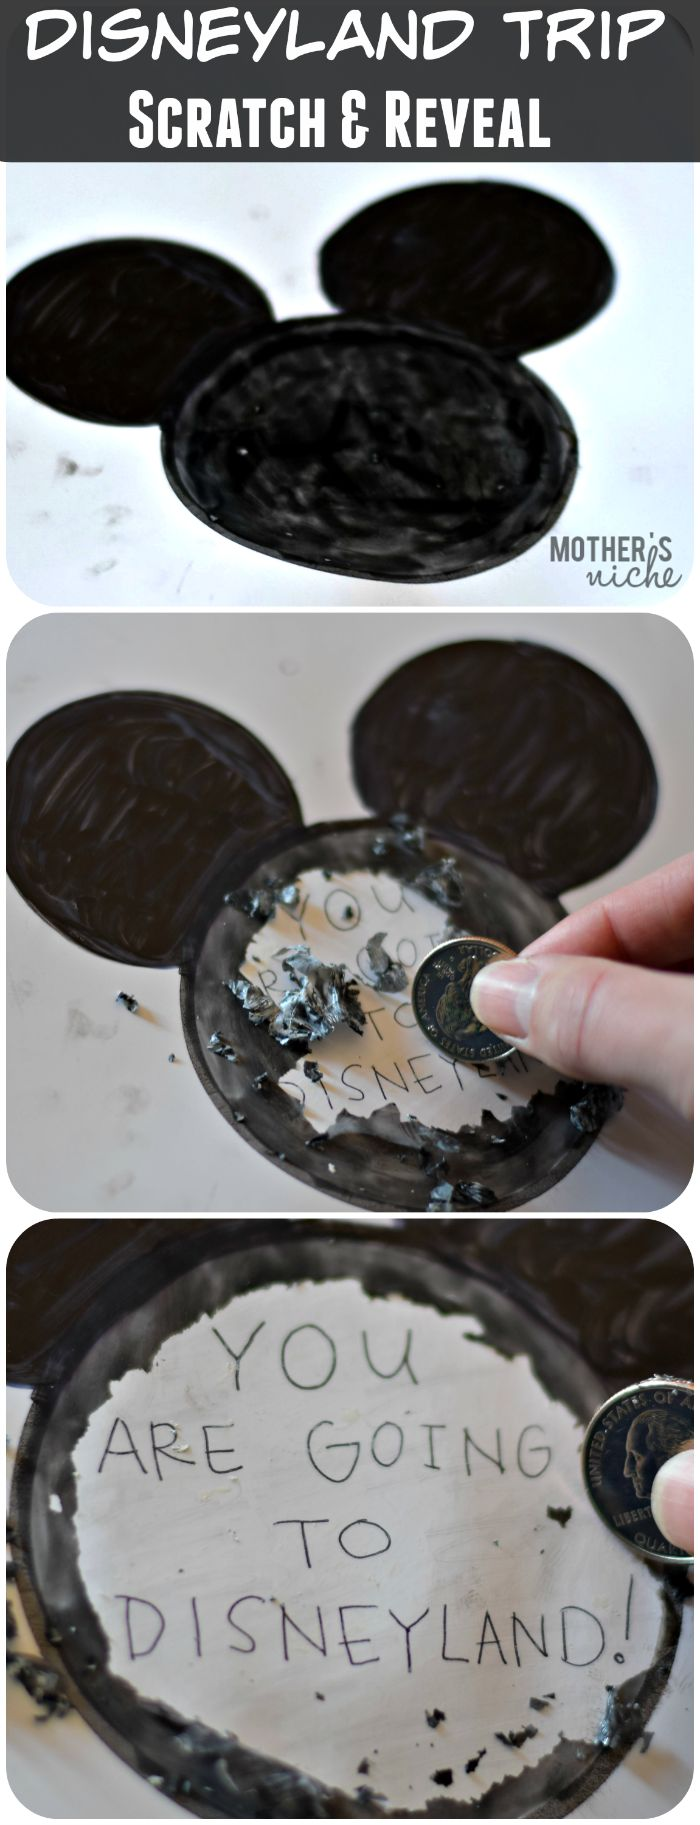 DIY Scratch & Reveal for surprising kids with a trip to DIsneyland - or Disney World, of course!. You can also use the free printable as a treasure hunt with the surprise at the end!